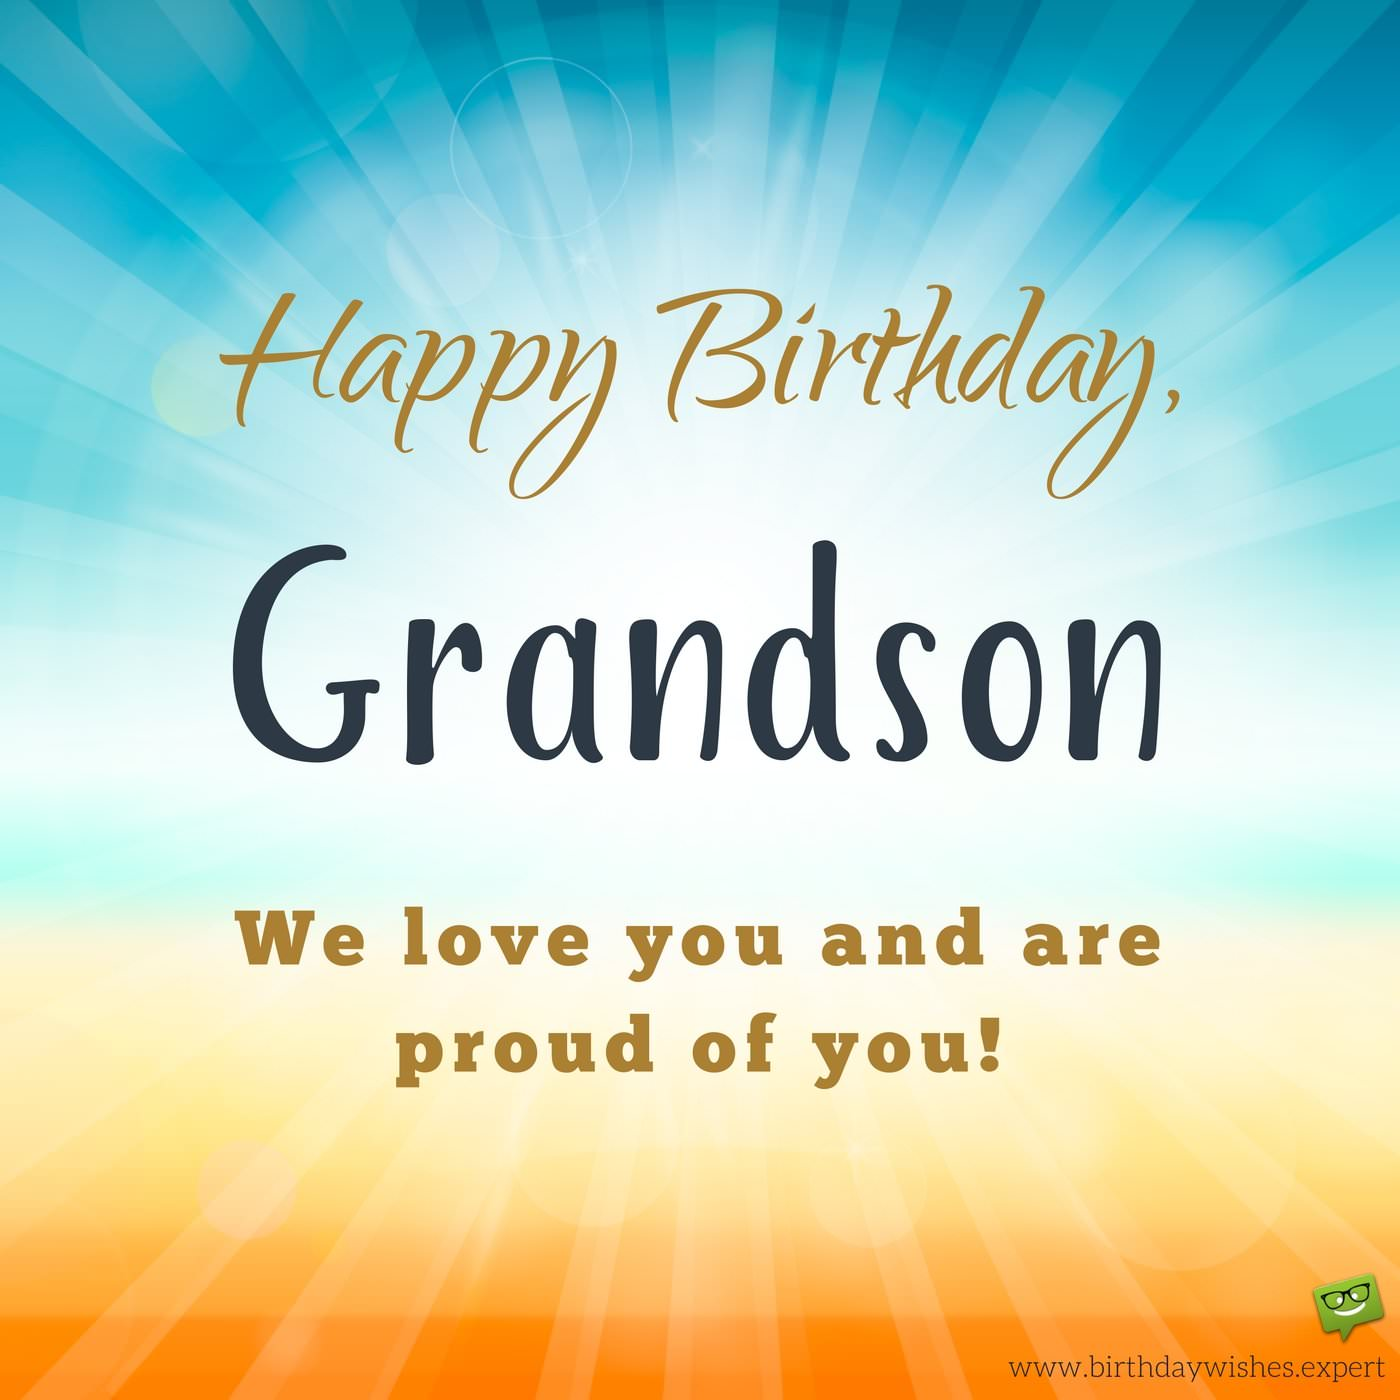 From your grandma grandpa birthday wishes for my grandson happy birthday grandson we love you and are proud of you m4hsunfo